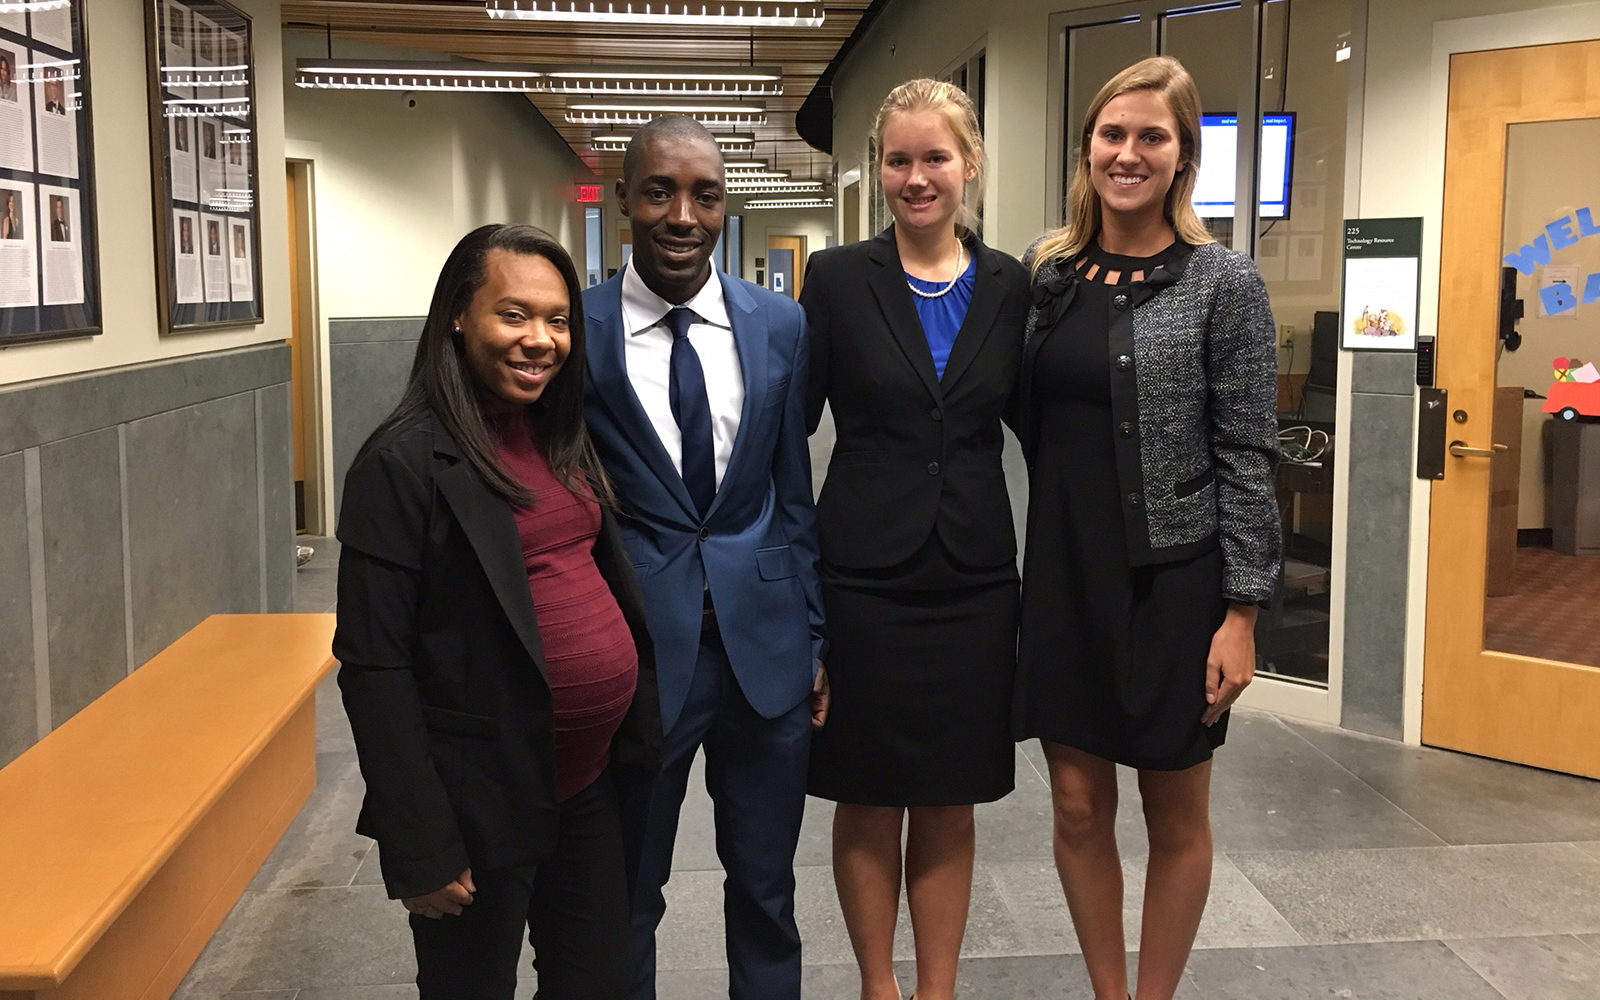 From left: Alexis Flowers, Southern University of Baton Rouge; Tshepo Makobela, University of Johannesburg; Alison Witschonke, University of Vermont; and Laura Van Eeckhoudt, Belmont University. (UConn School of Business)